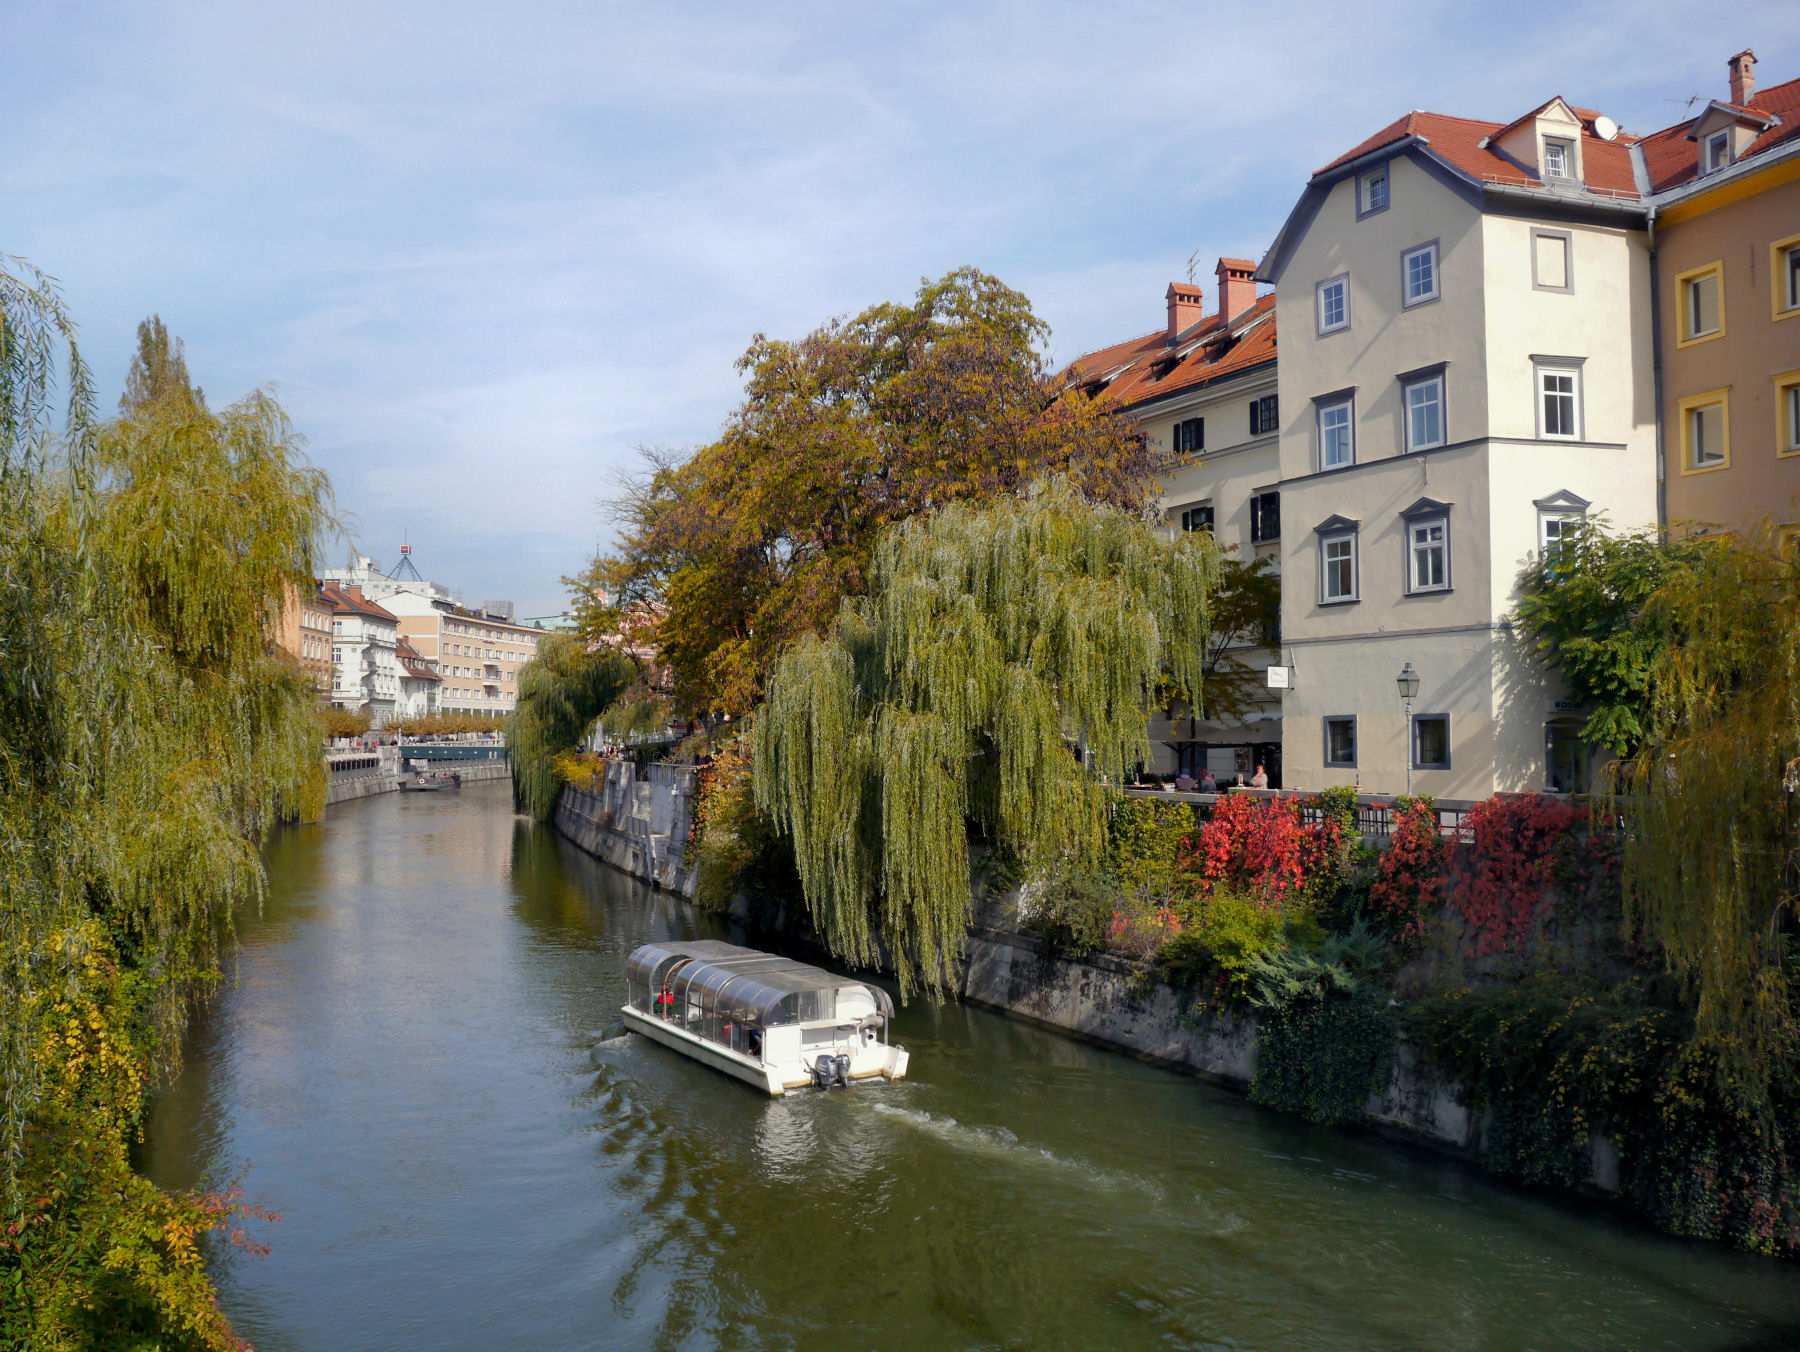 One of the many interesting boats cruising along the Ljubljanica river in Ljubljana Old Town, Slovenia